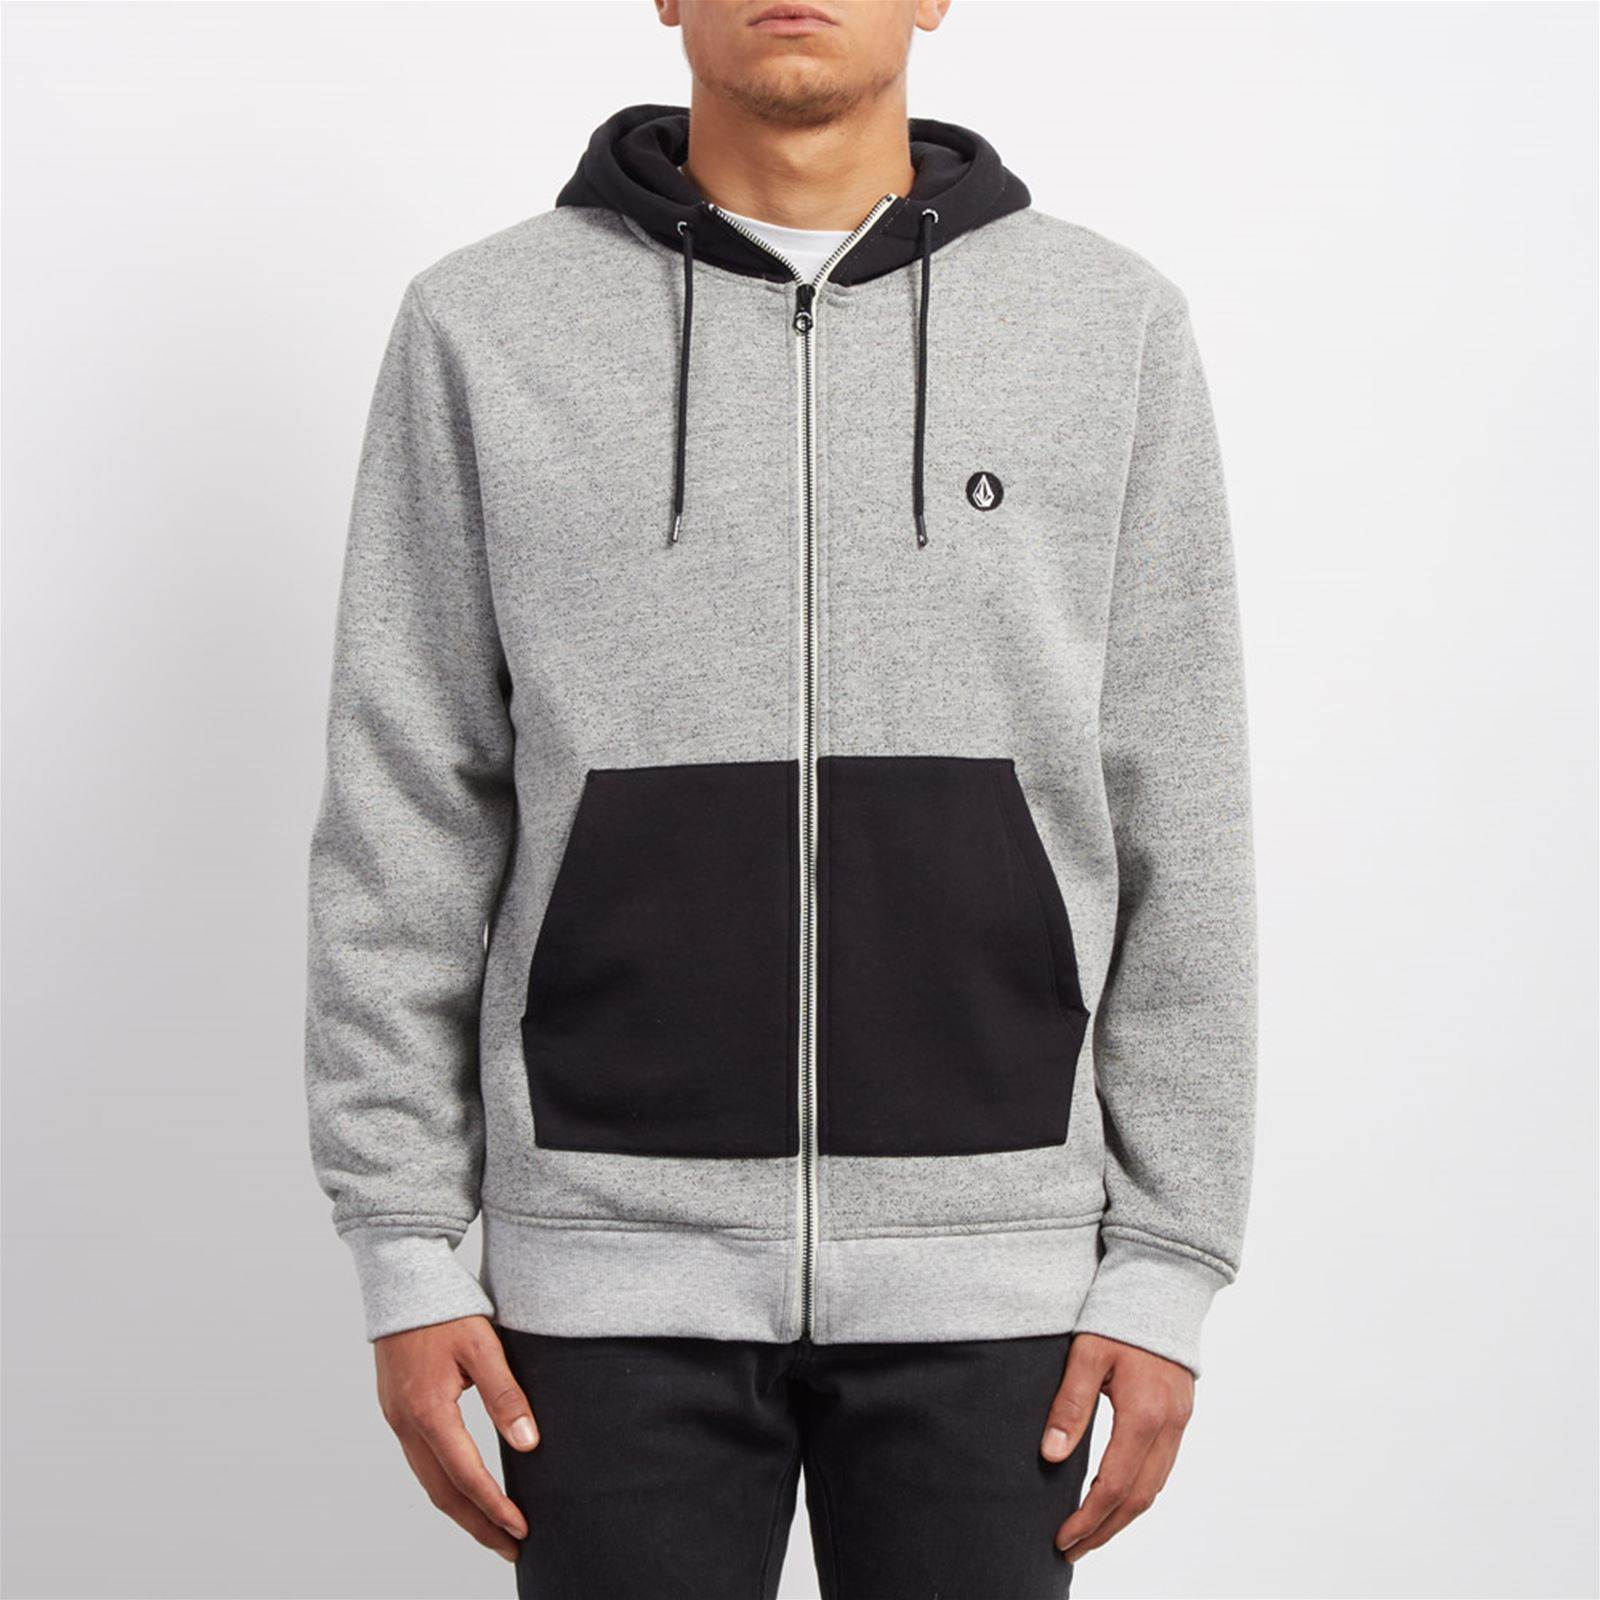 V Gris LinedSweat Capuche a Homme Factual Volcom odBexrC